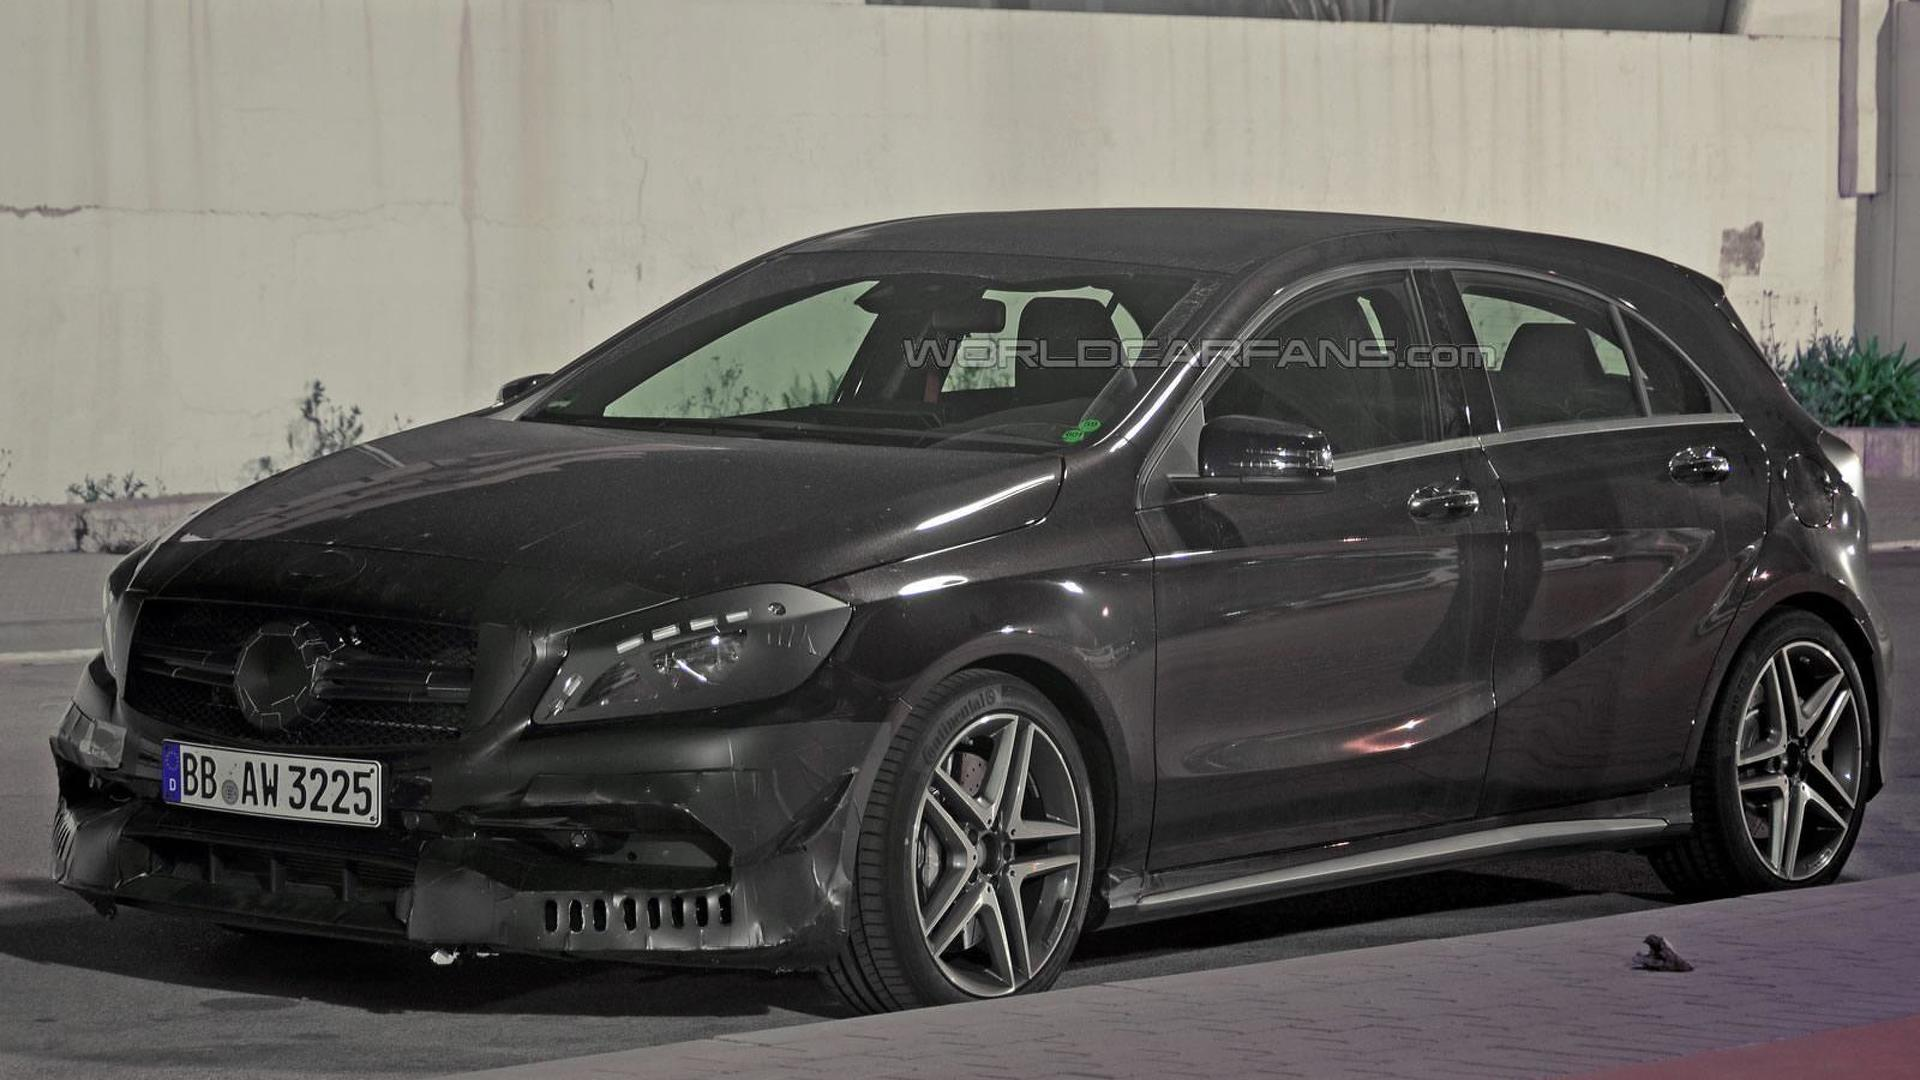 Mercedes-Benz A45 AMG facelift spied inside and out (24 pics)